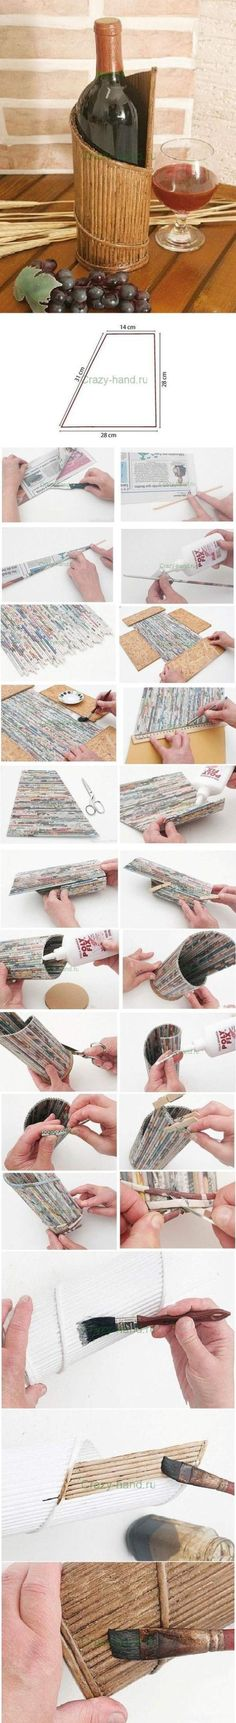 Bottle holder made with newspaper #upcycle